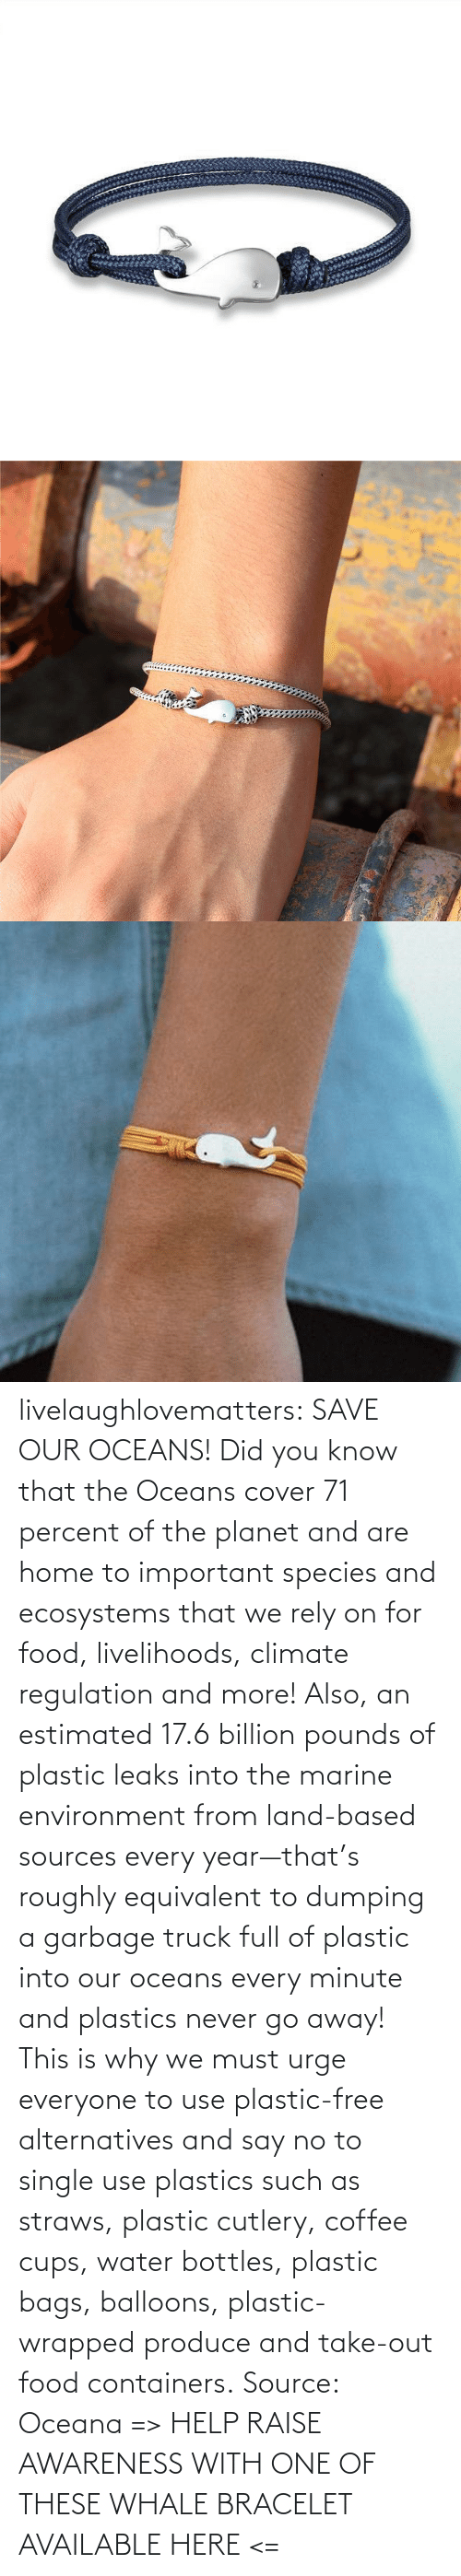 Cover: livelaughlovematters: SAVE OUR OCEANS!  Did you know that the Oceans cover 71 percent of the planet and are home to important species and ecosystems that we rely on for food, livelihoods, climate regulation and more! Also, an estimated 17.6 billion pounds of plastic leaks into the marine environment from land-based sources every year—that's roughly equivalent to dumping a garbage truck full of plastic into our oceans every minute and plastics never go away! This is why we must urge everyone to use plastic-free alternatives and say no to single use plastics such as straws, plastic cutlery, coffee cups, water bottles, plastic bags, balloons, plastic-wrapped produce and take-out food containers. Source: Oceana => HELP RAISE AWARENESS WITH ONE OF THESE WHALE BRACELET AVAILABLE HERE <=